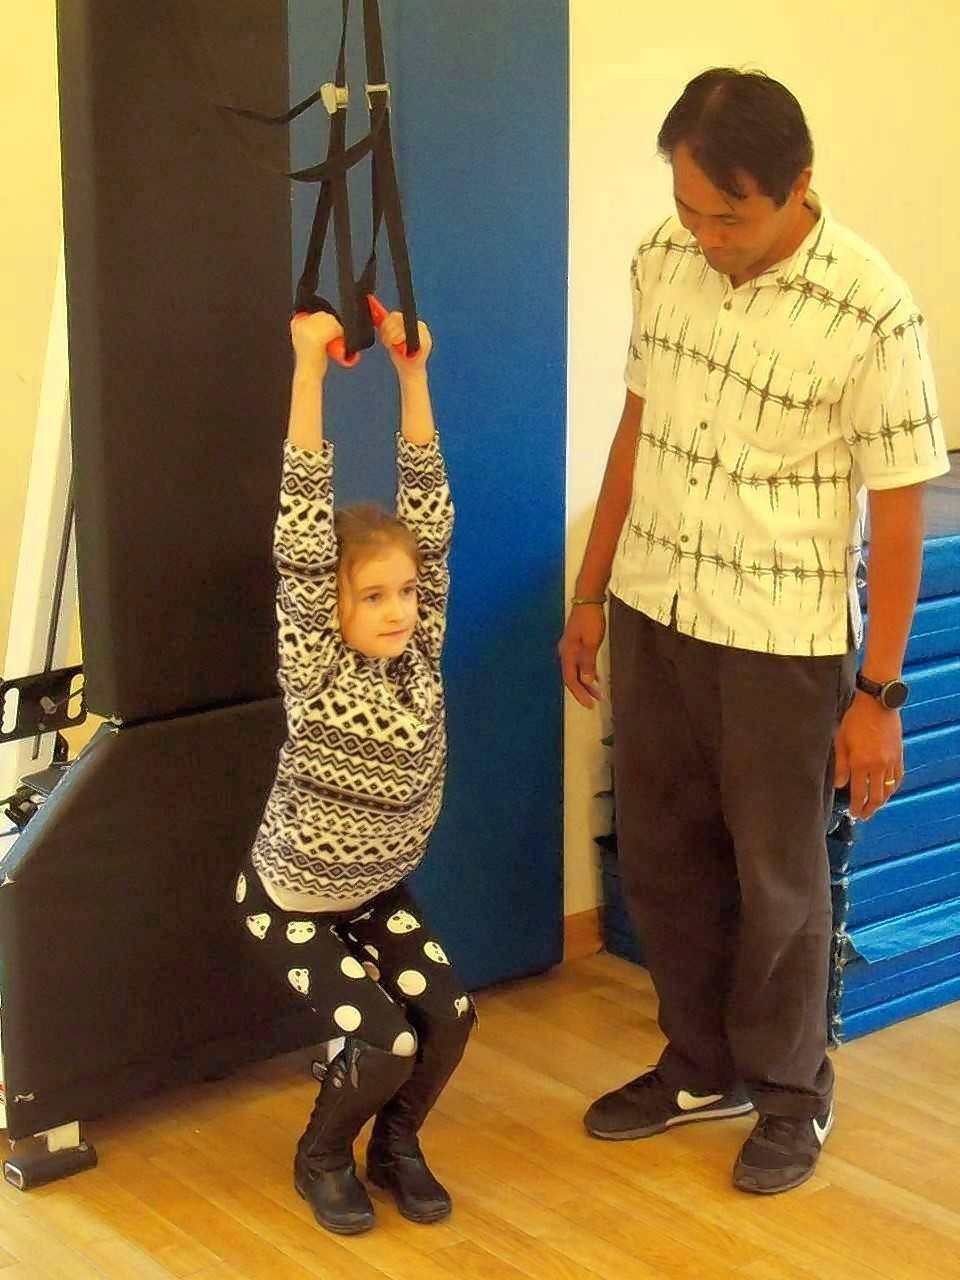 Seven-year-old Ariel Panteleeva of Arlington Heights demonstrates a pullup activity supervised by Riverwoods Montessori Teacher Freddie Madrid of Morton Grove.